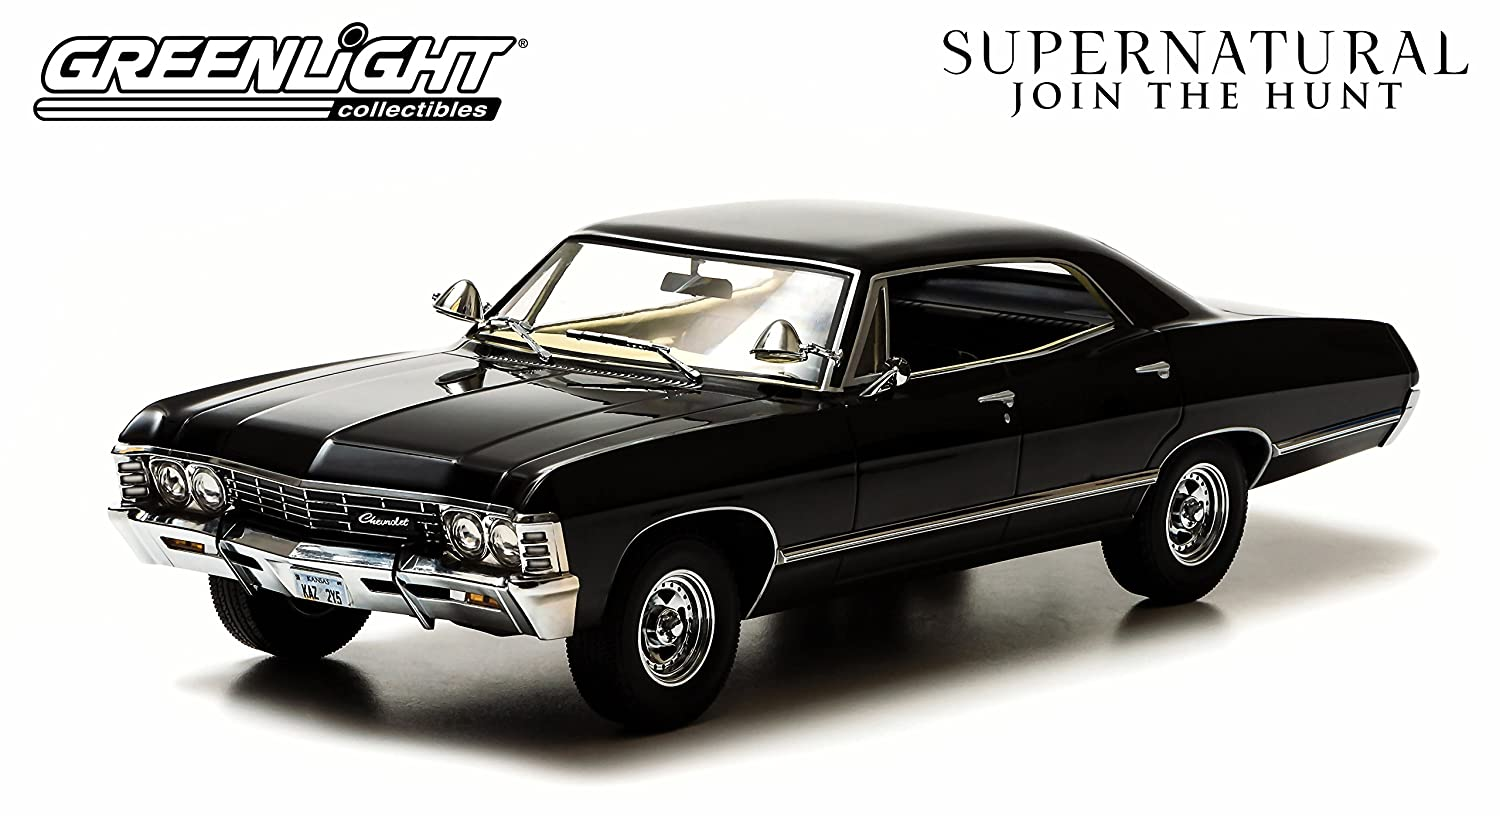 Impala black chevy impala : Amazon.com: Greenlight 1967 Chevy Impala